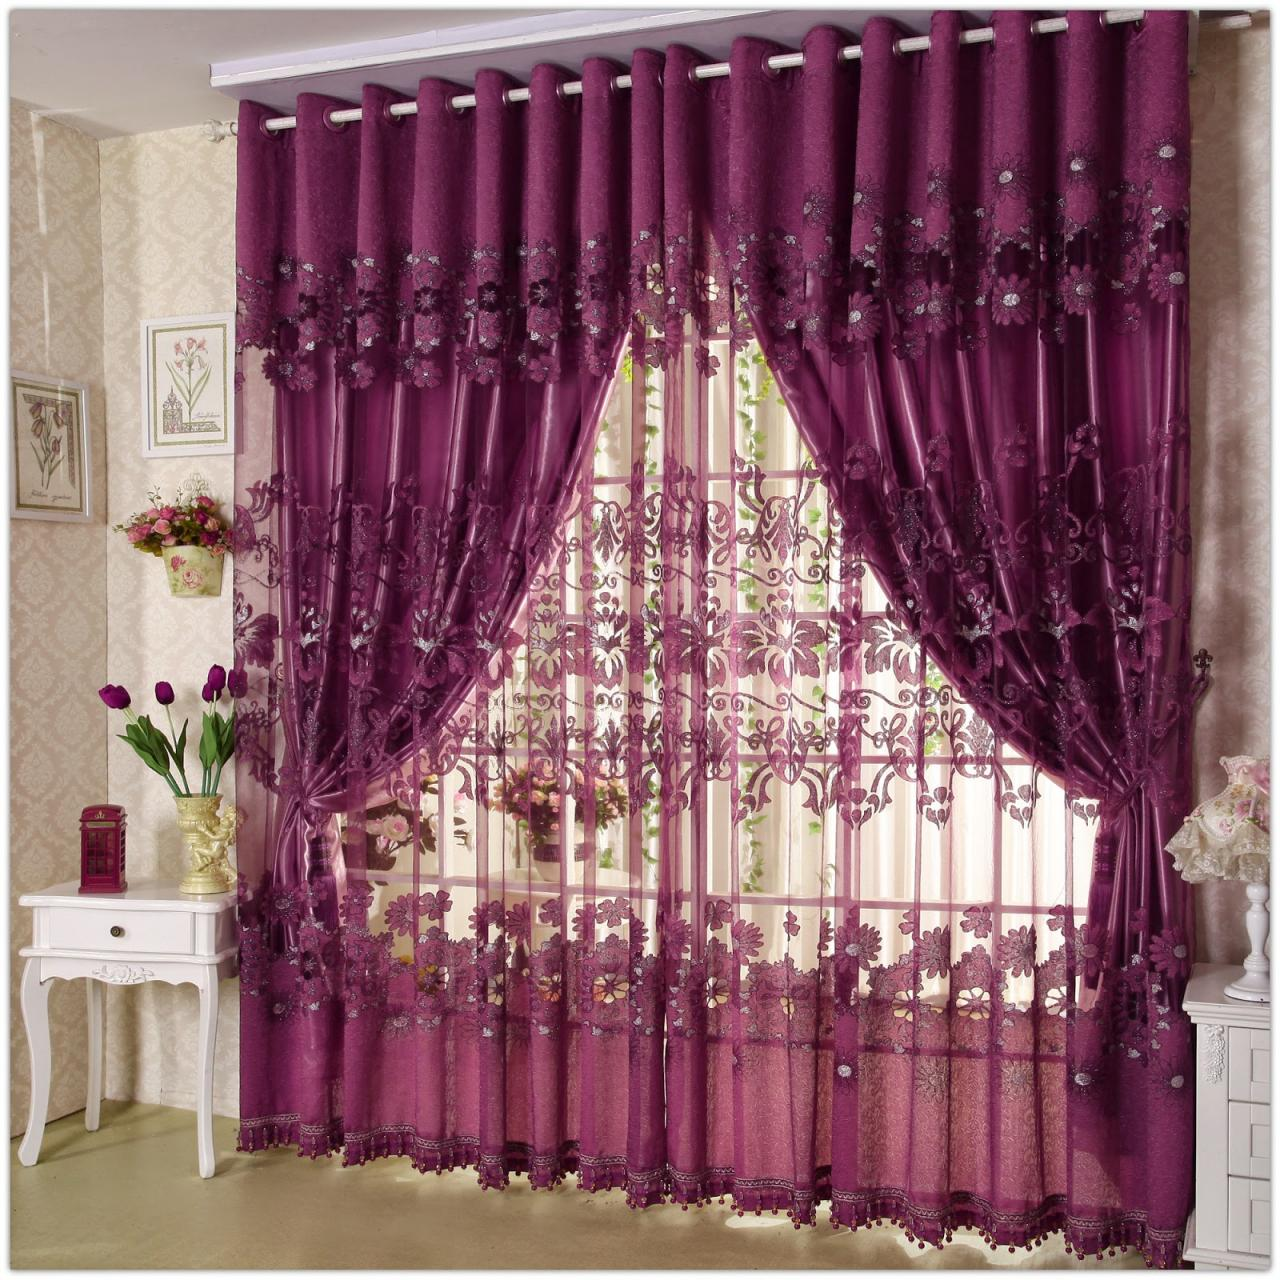 wonderful-purple-unique-design-windows-curtain-interior-purple-color-cord-tieback-tassel-holdback-valance-sheer-curtain-grommet-top-stainless-rail-at-house-with-contemporary-window-treatments-and